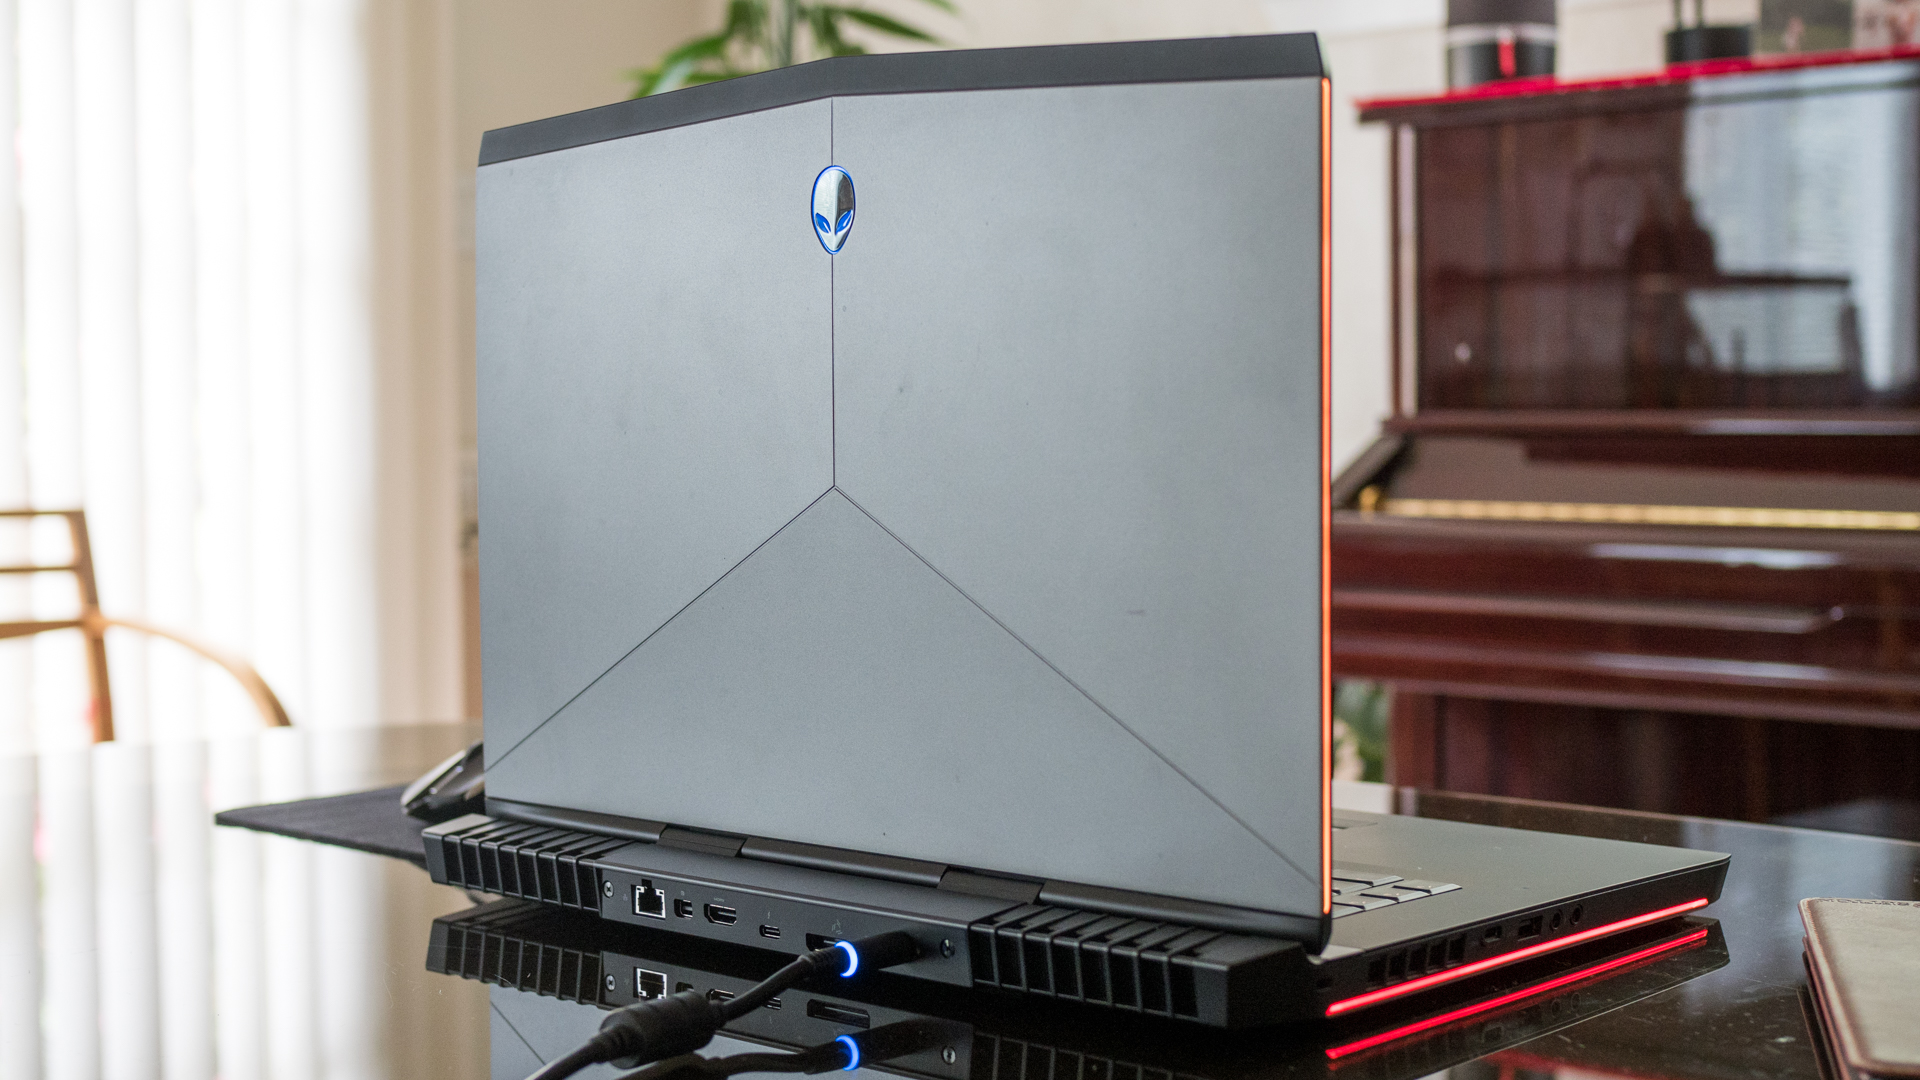 Windows 10 April 2018 Update is finally coming to all Alienware